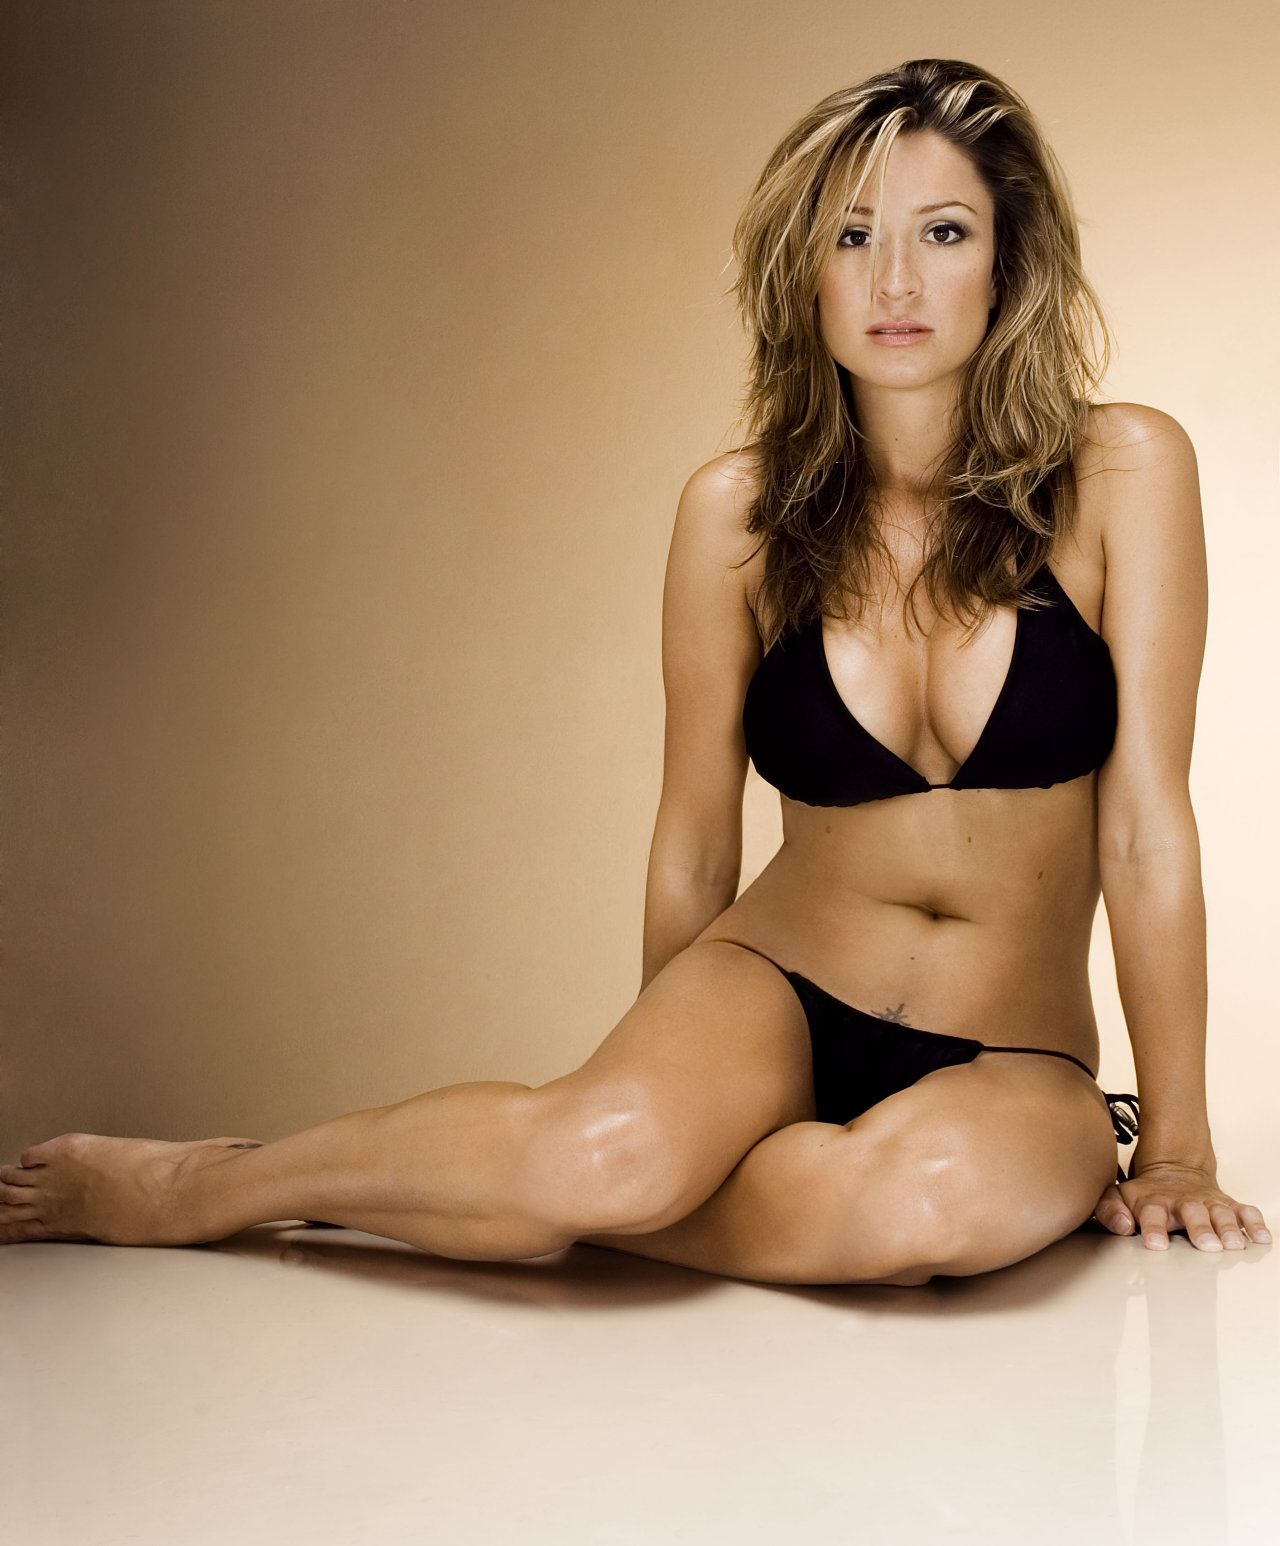 Feet Rebecca Loos naked (56 foto and video), Ass, Cleavage, Instagram, see through 2006